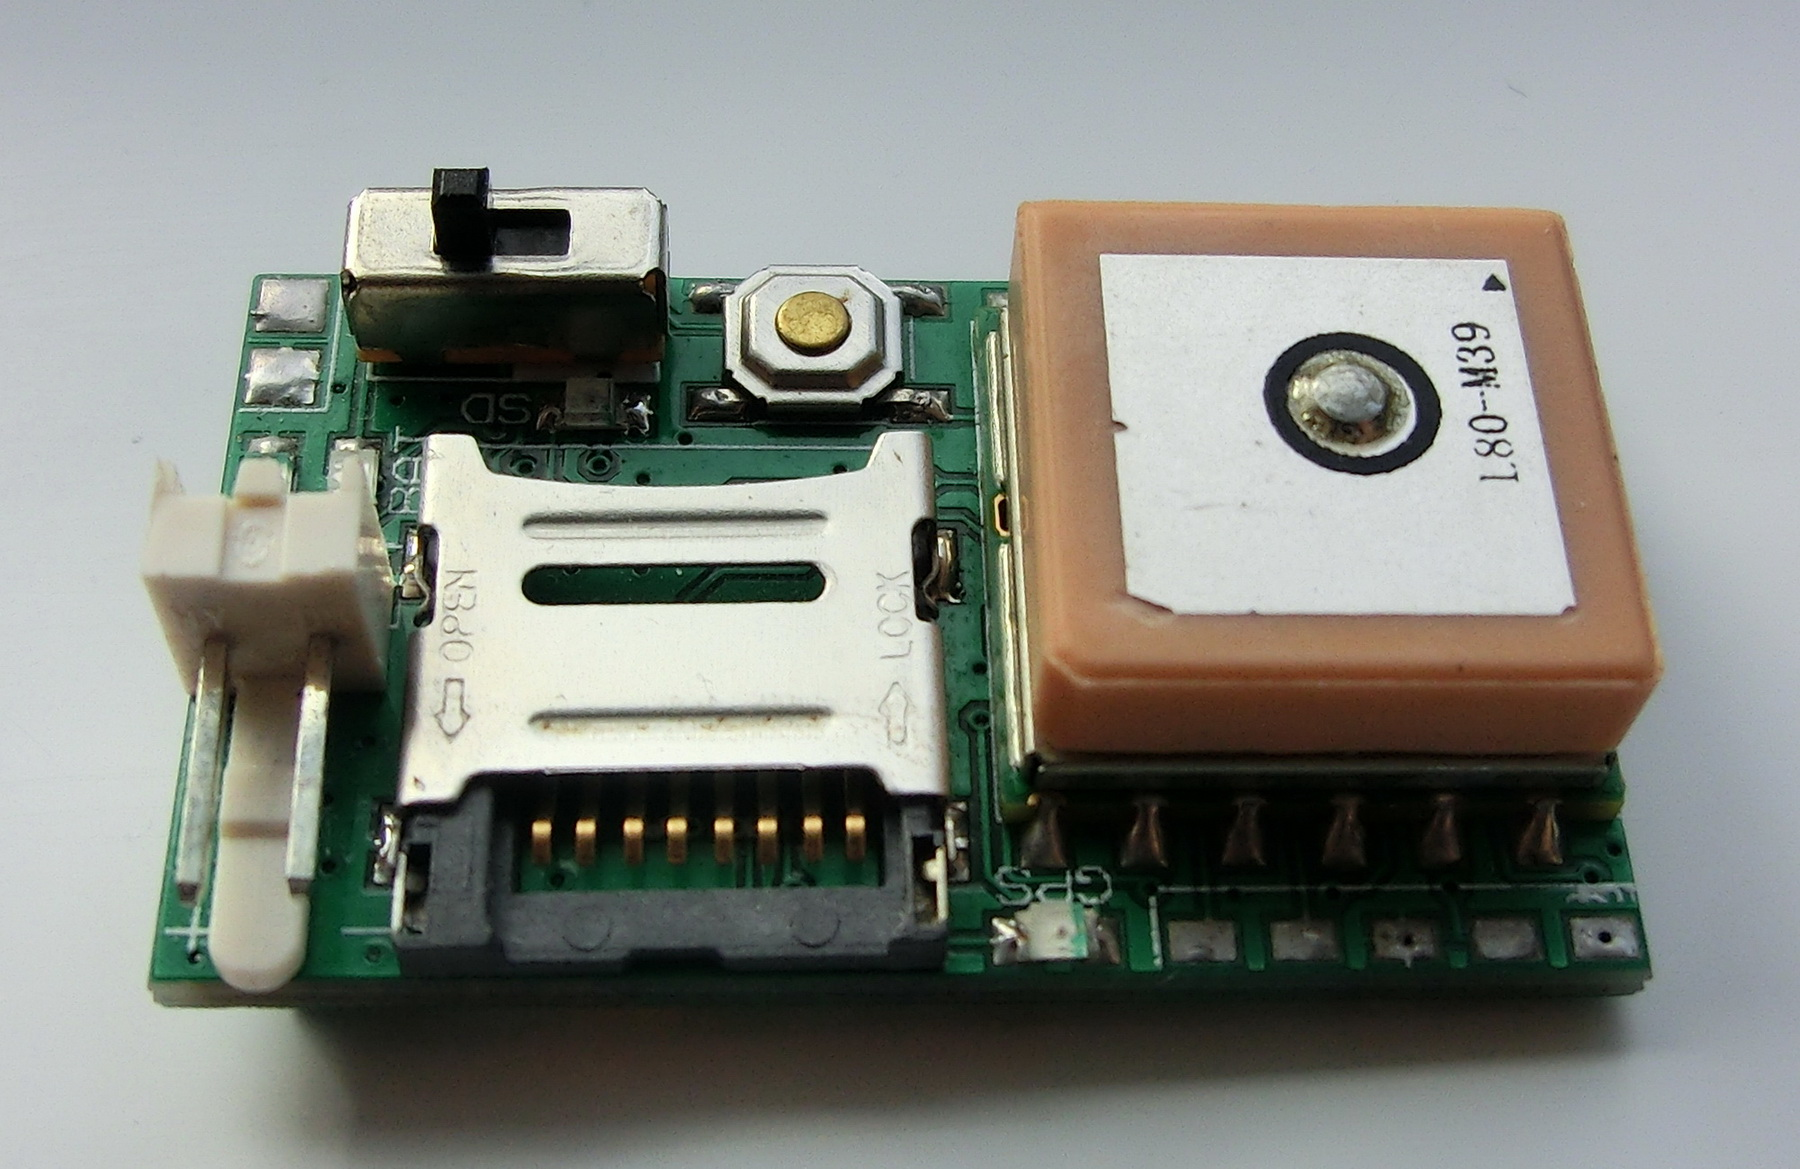 Exrockets Blog Mini Pic Gps Data Logger With Micro Sd Card And Circuit Board Using The Is Also Quite Simple